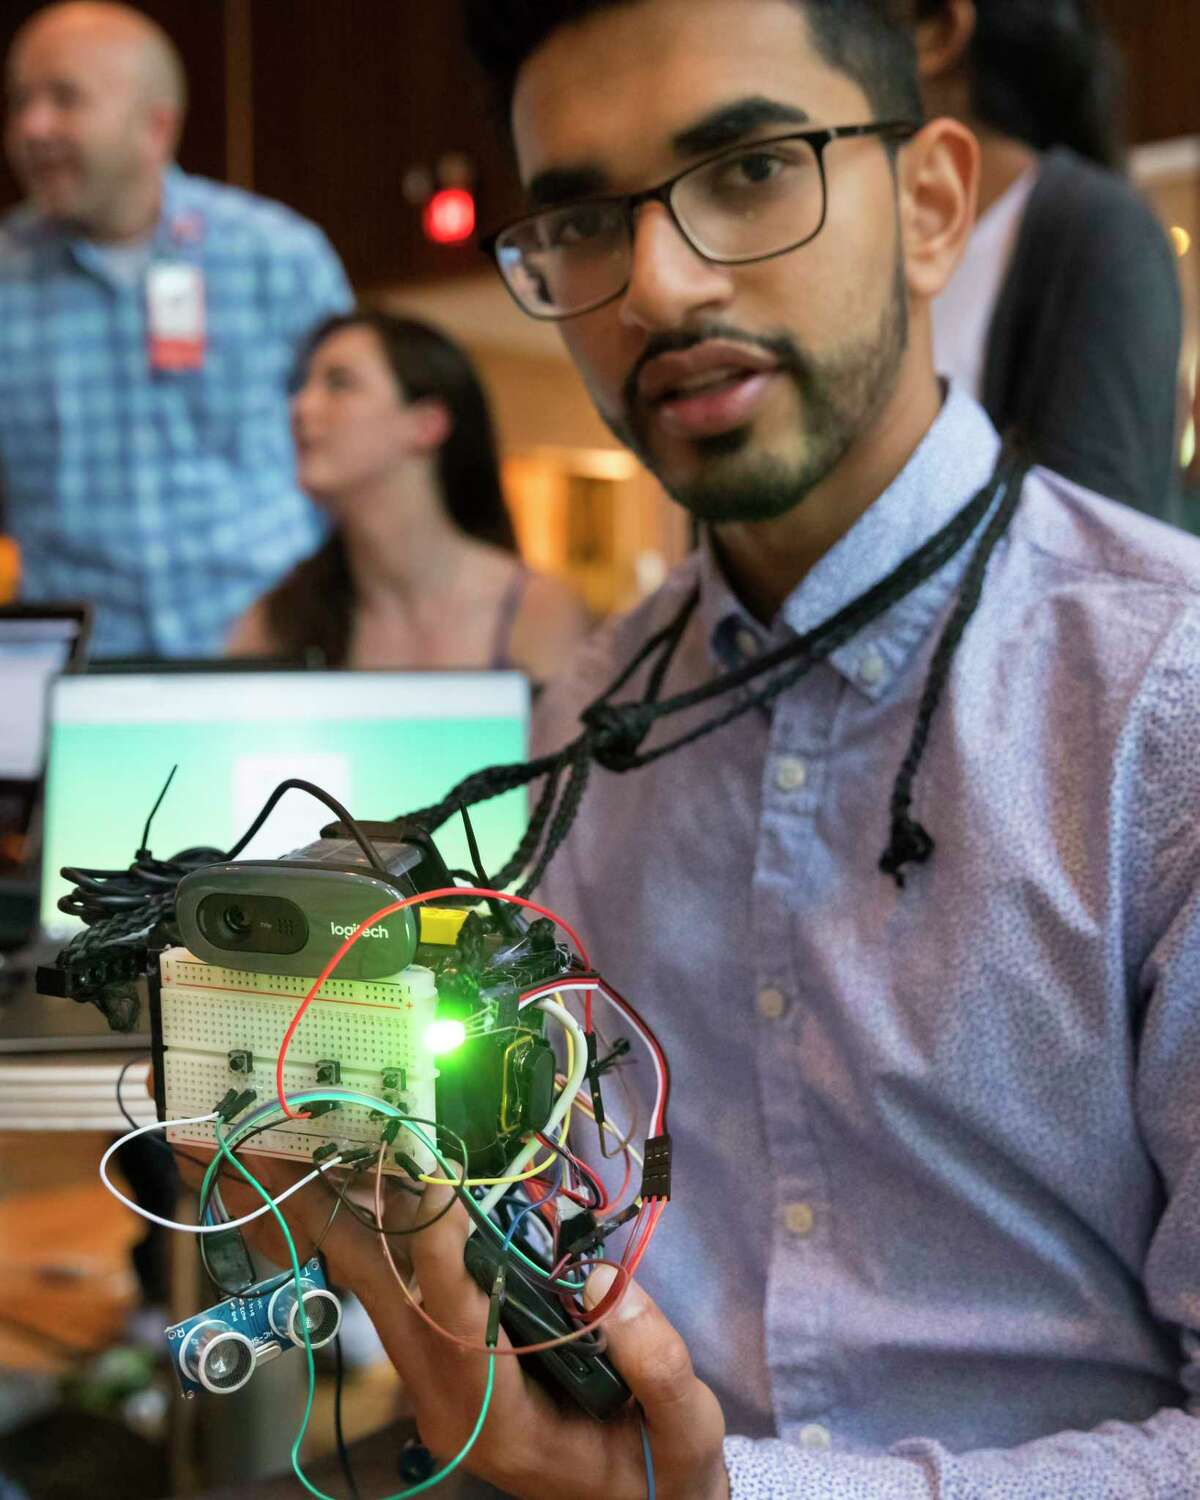 Harsh Patel holds the Memoreyes facial recognition device during HackRice, Rice University's annual hackathron event sponsored by the university's Computer Science Club.